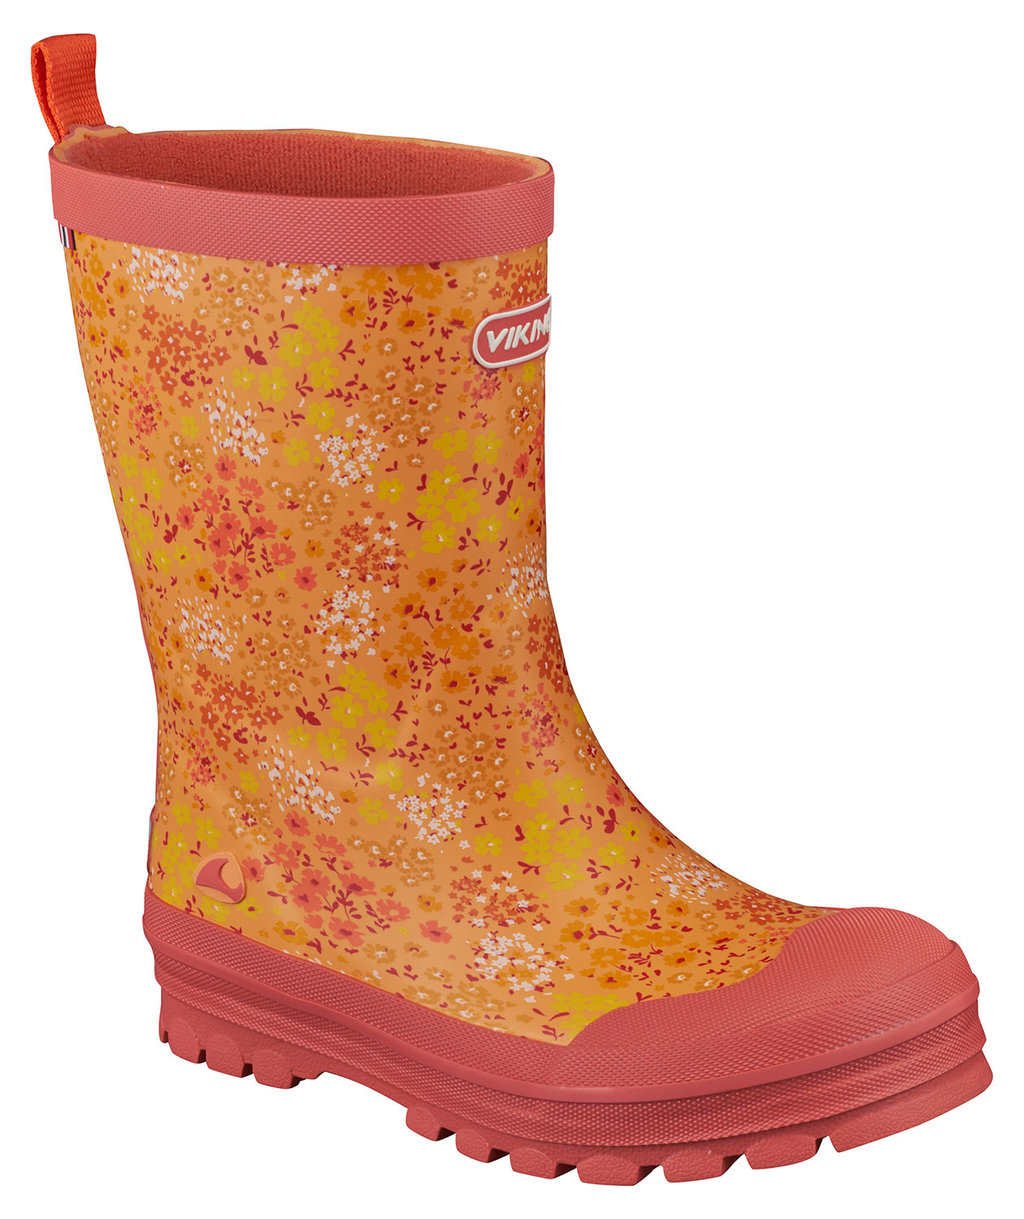 Viking Mimosa rubber boots for kids,  Coral